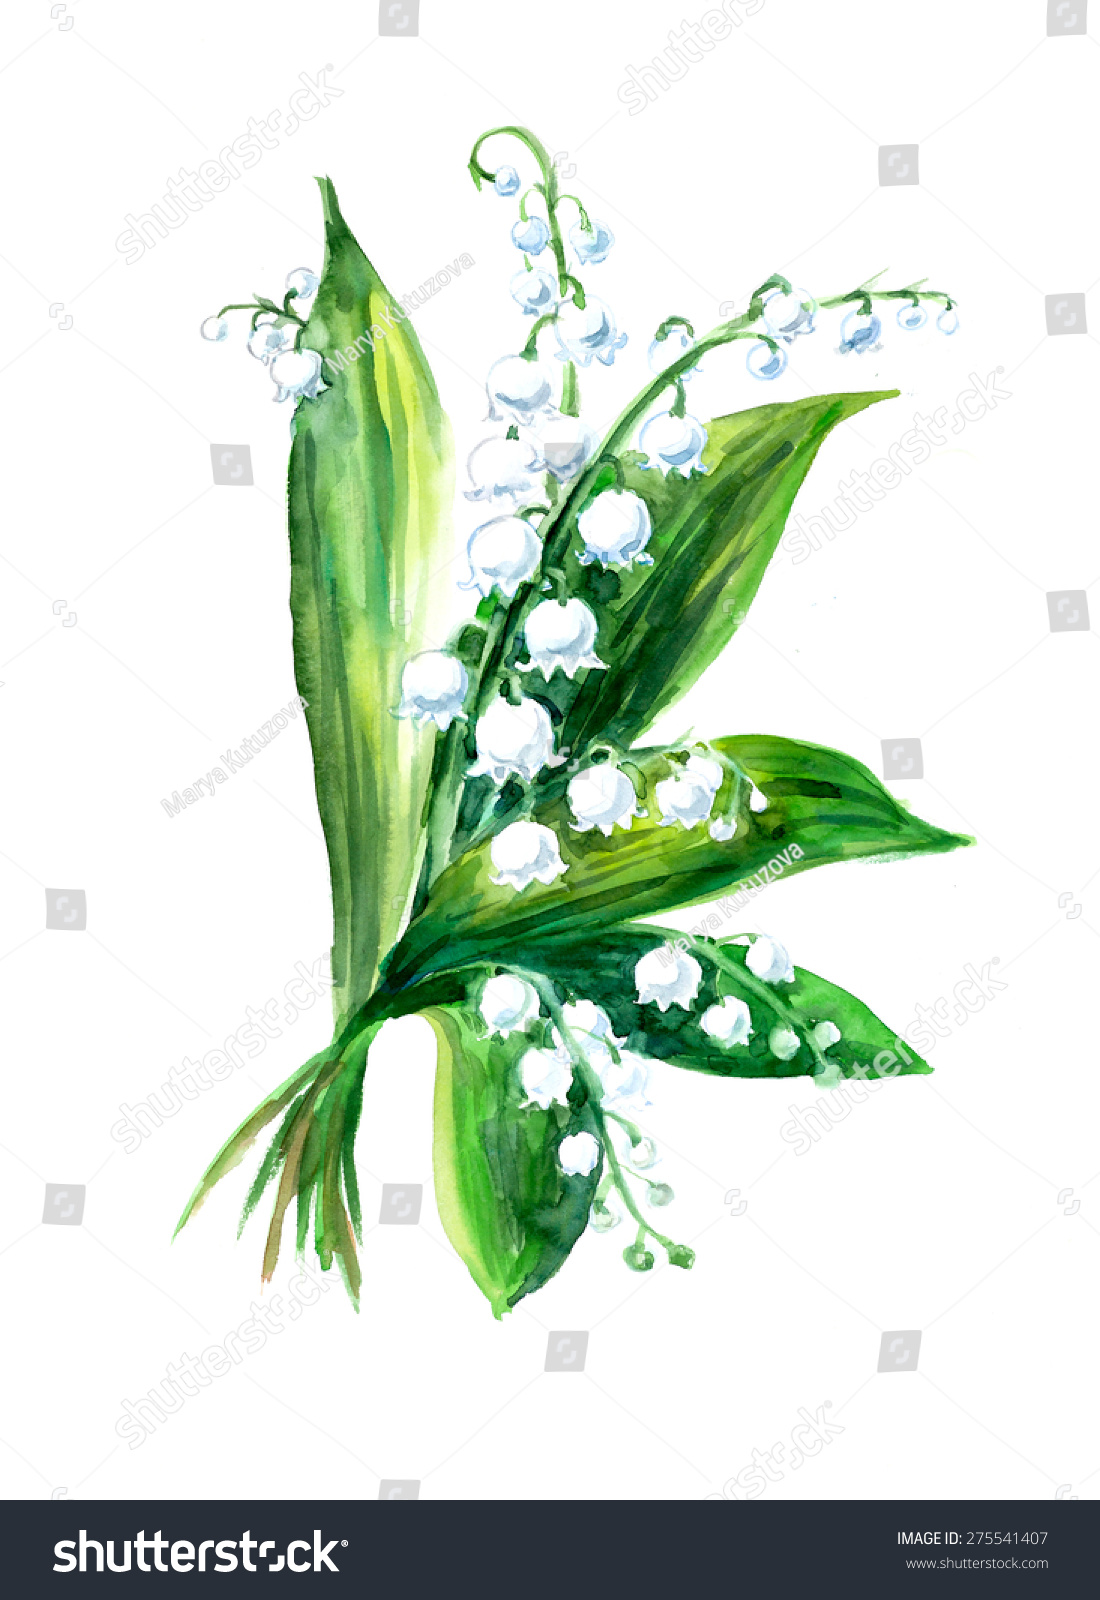 Lily valley bouquet greeting cards pattern stock illustration lily of the valley bouquet greeting cards pattern from white flowers watercolor hand izmirmasajfo Choice Image